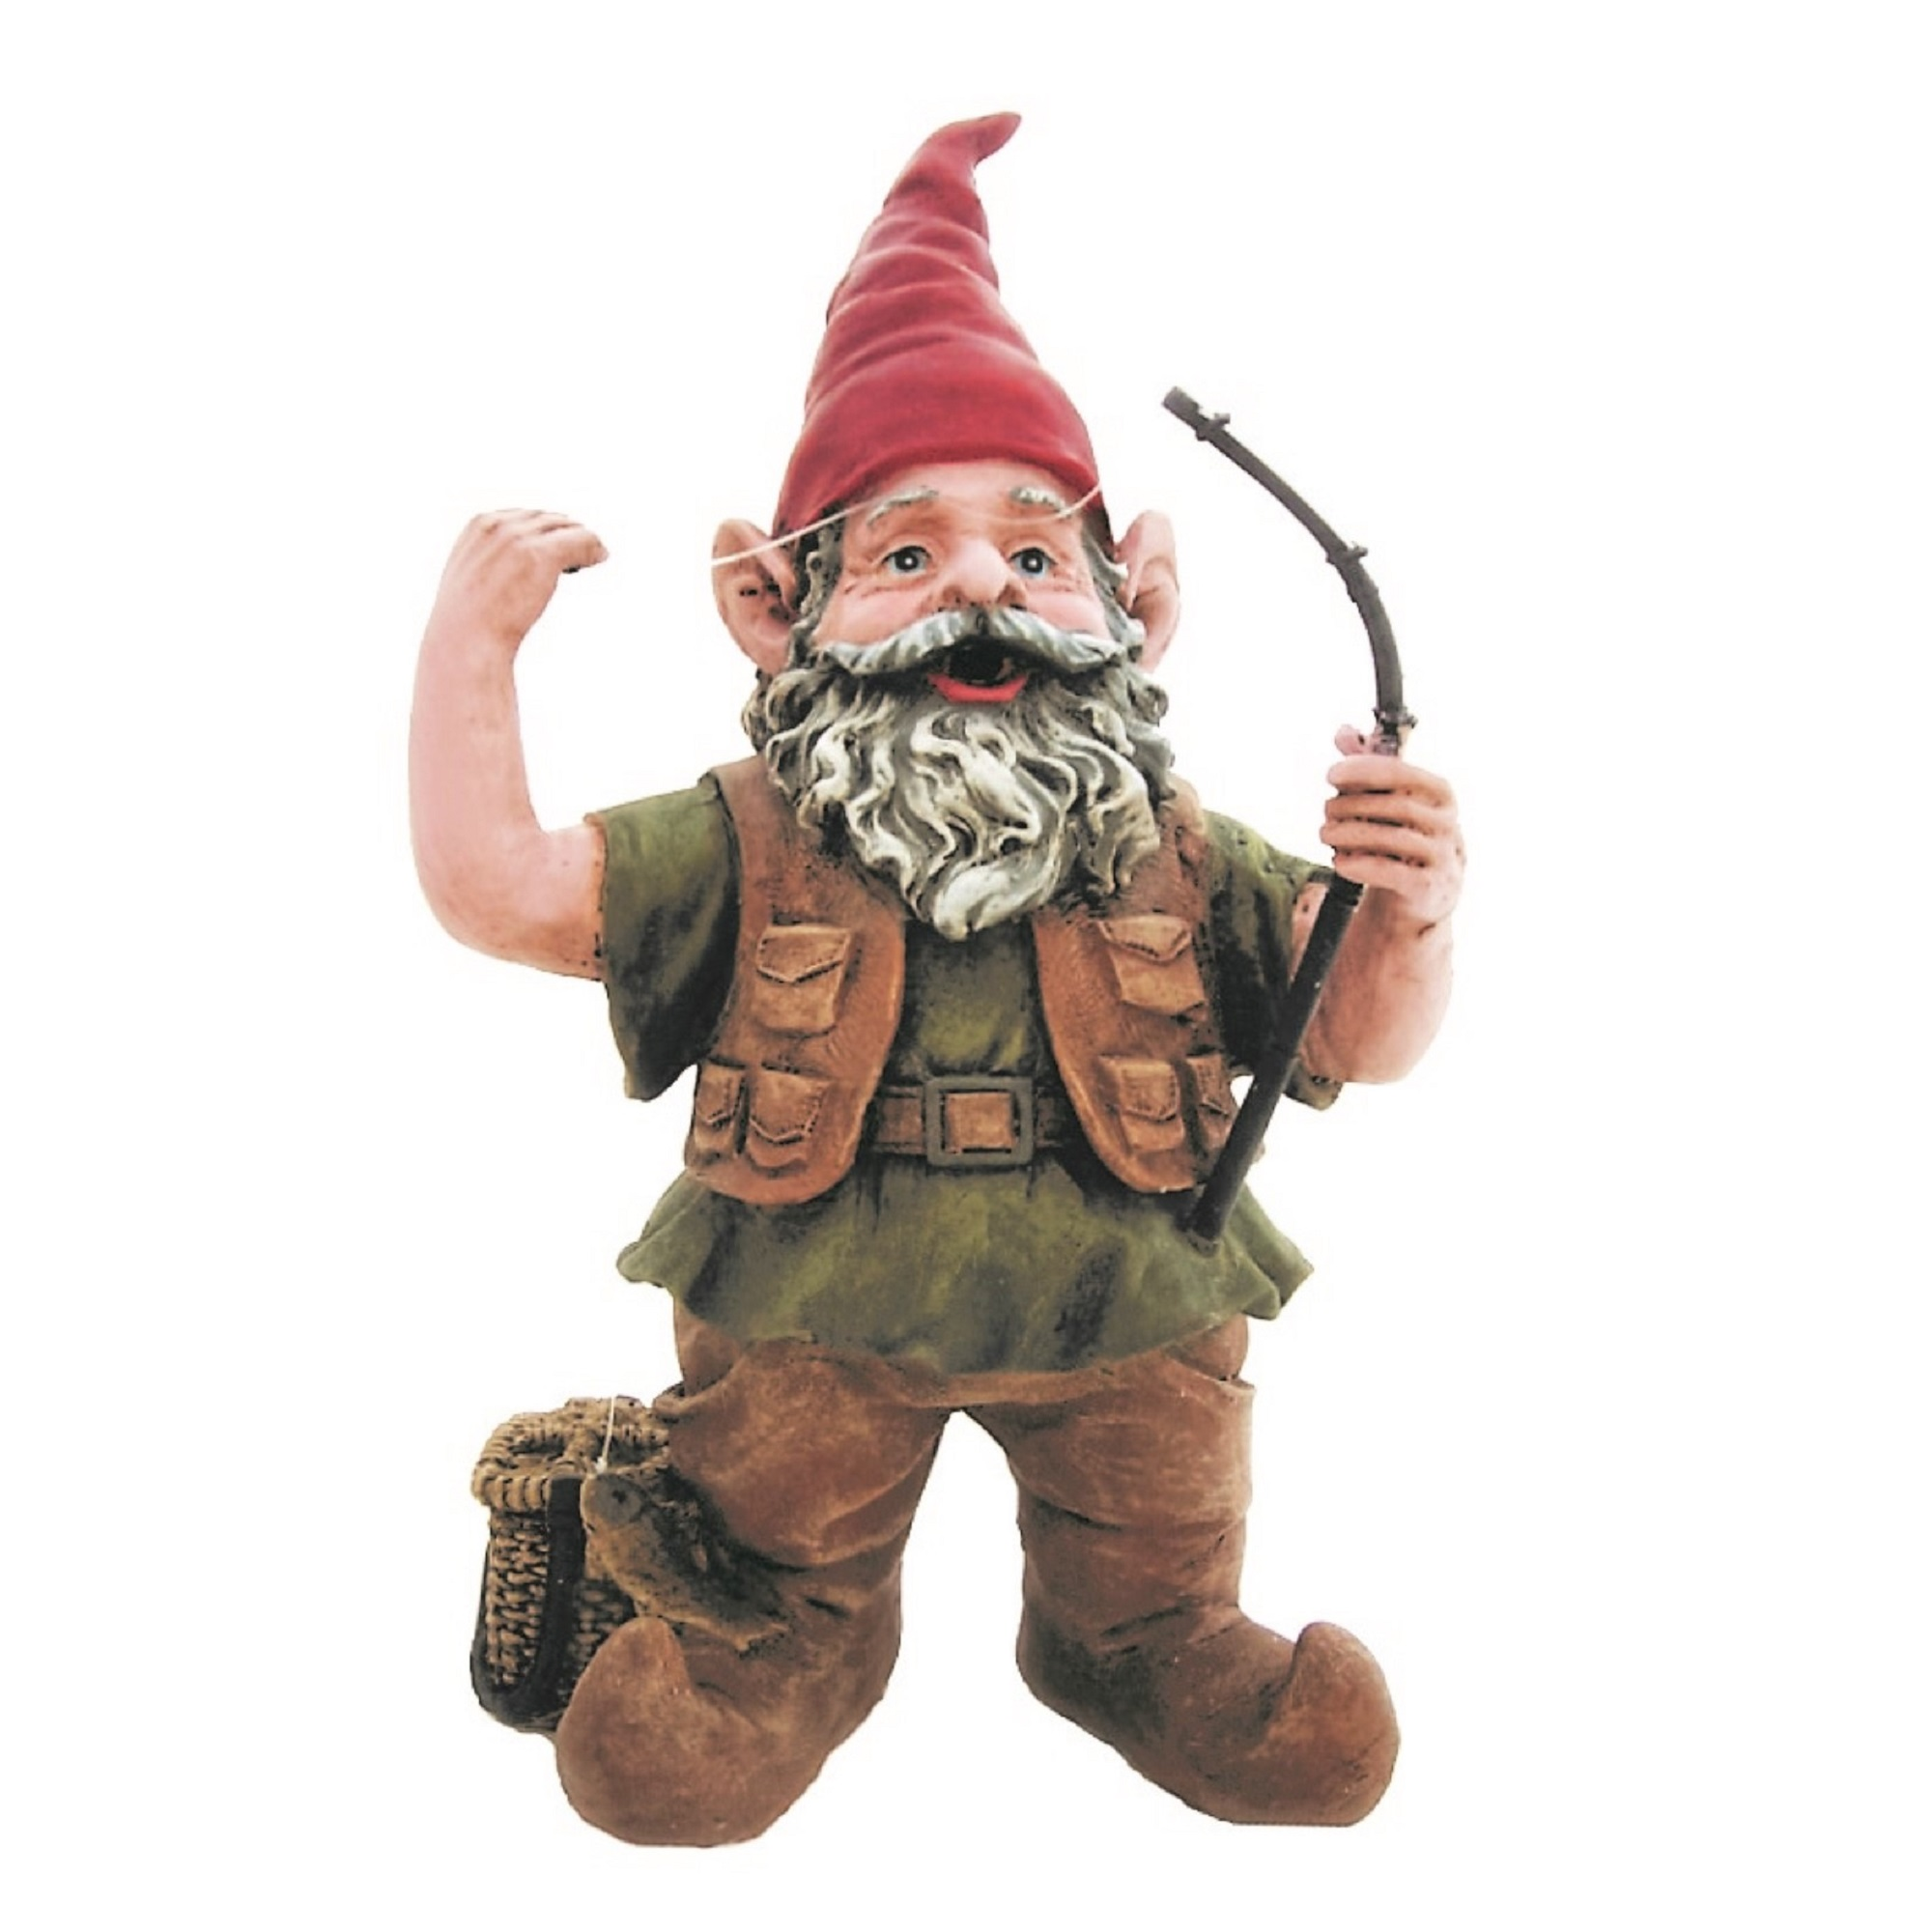 "Nowaday Gnomes Fisherman Gnome Holding Fishing Pole Home & Garden Gnome Statue 14""H by GSI Homestyles"